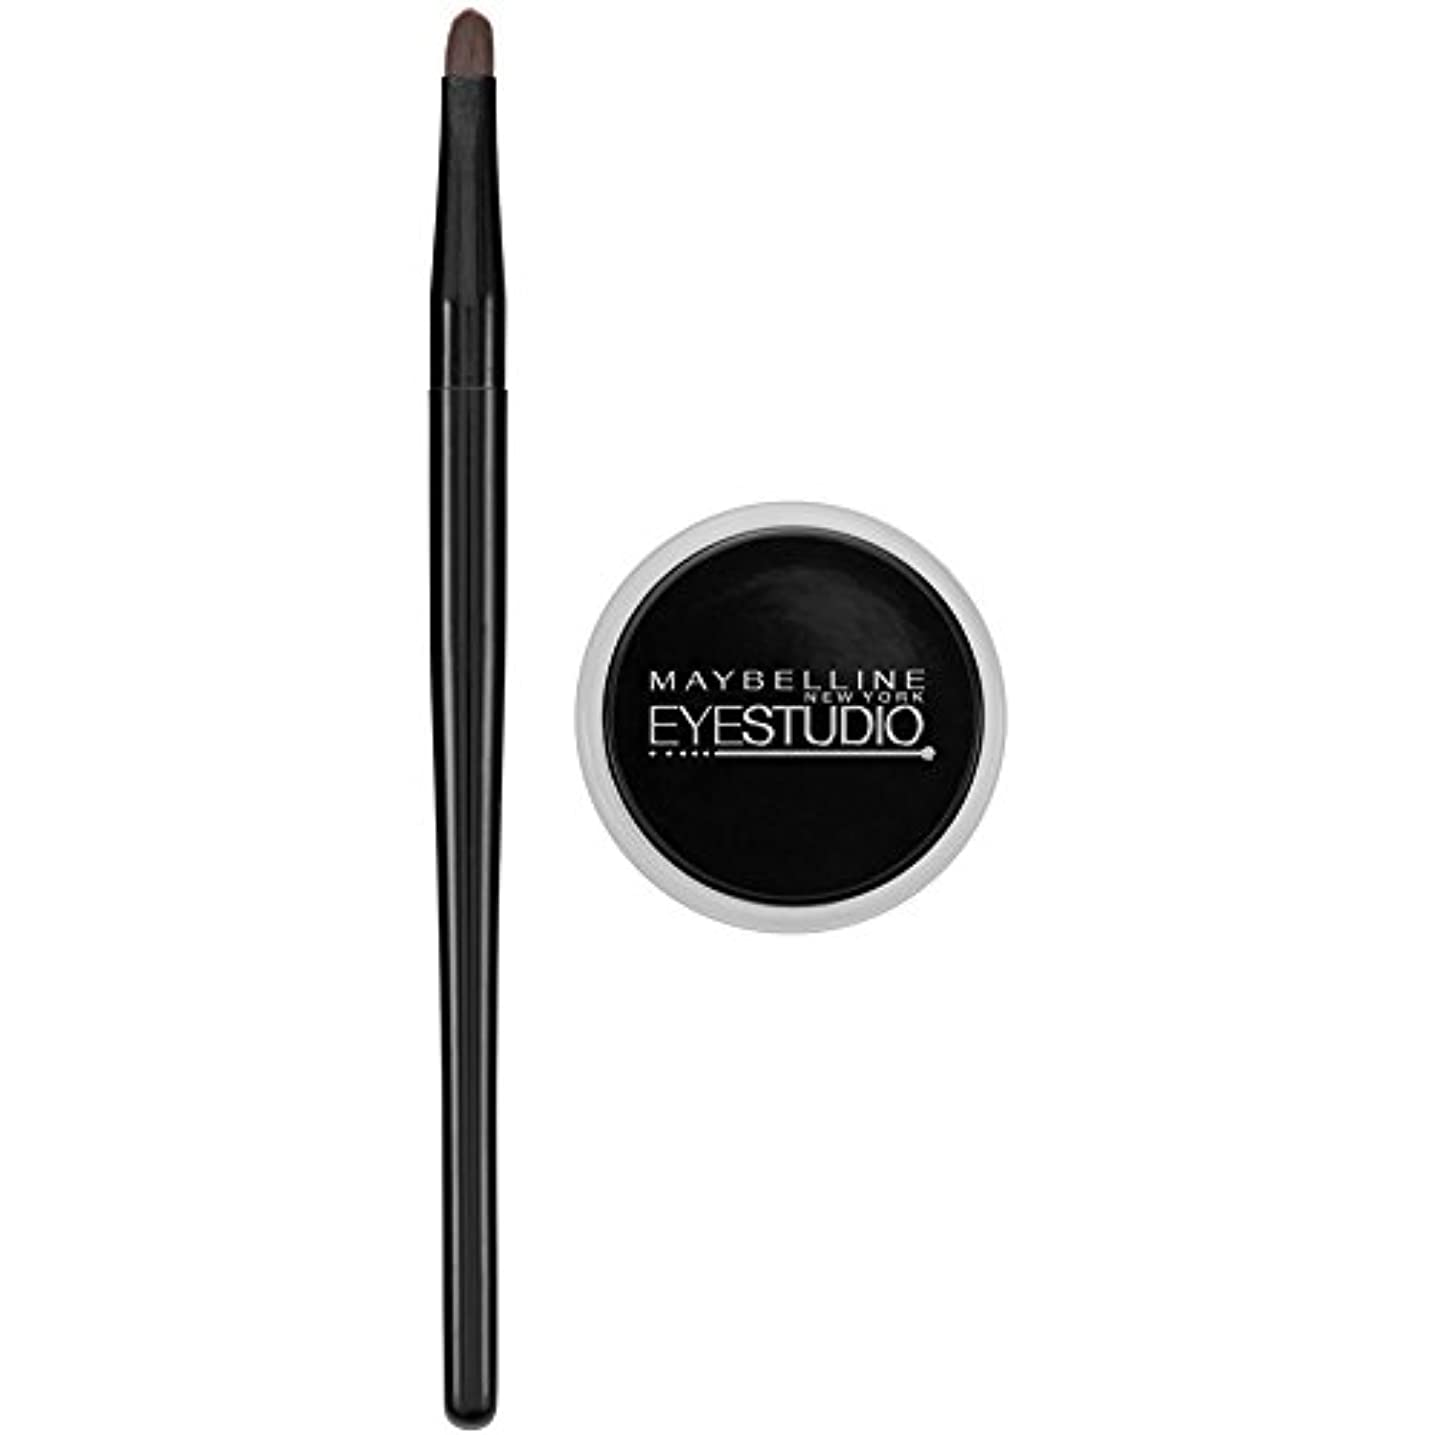 光沢増加する空洞MAYBELLINE Eye Studio Lasting Drama Gel Eyeliner - Blackest Black 950 (並行輸入品)